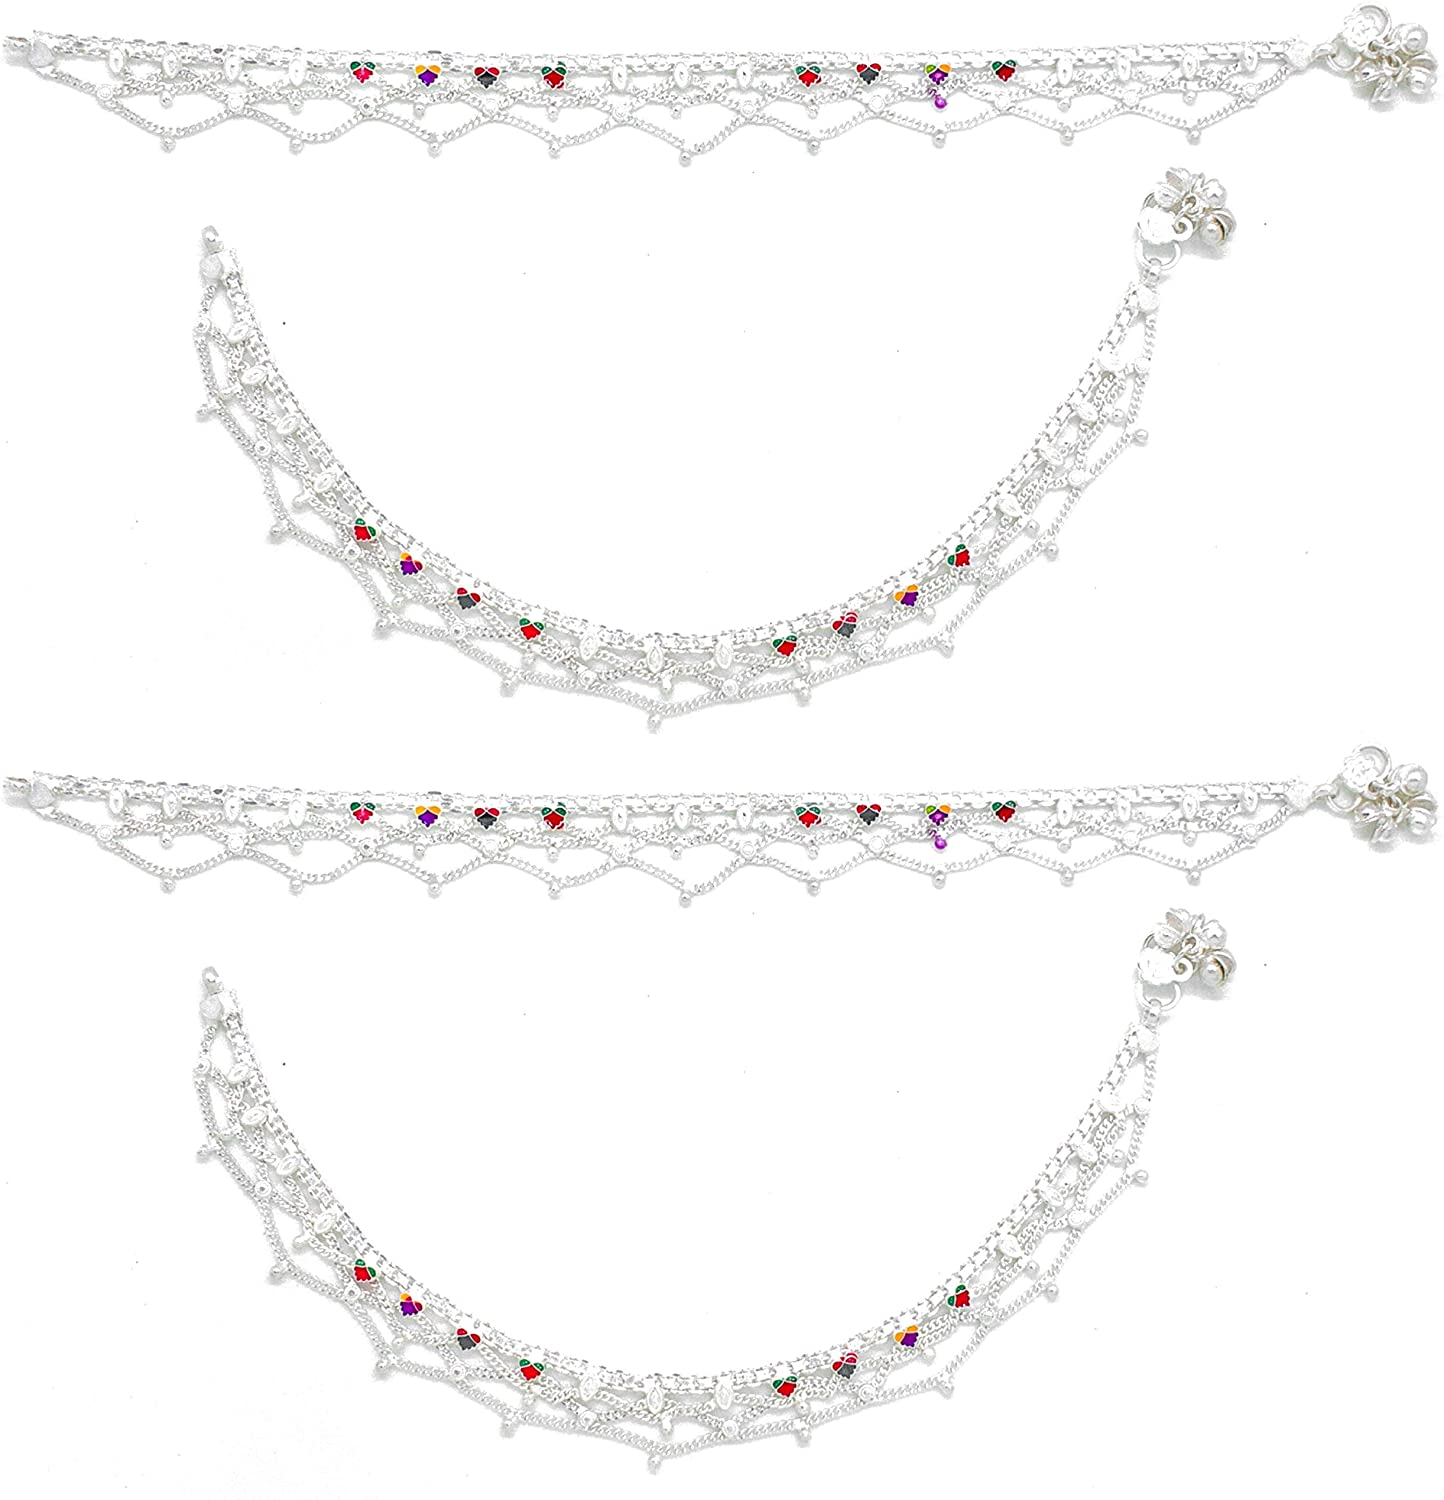 AanyaCentric Indian Ethnic Payal White Metal Silver Plated Alloy Anklets Ankle Bracelets 10 inches Long Vintage Style for Womens Girls Feet Jewelry Beach Wedding Sandals with Jingle Bells Charm